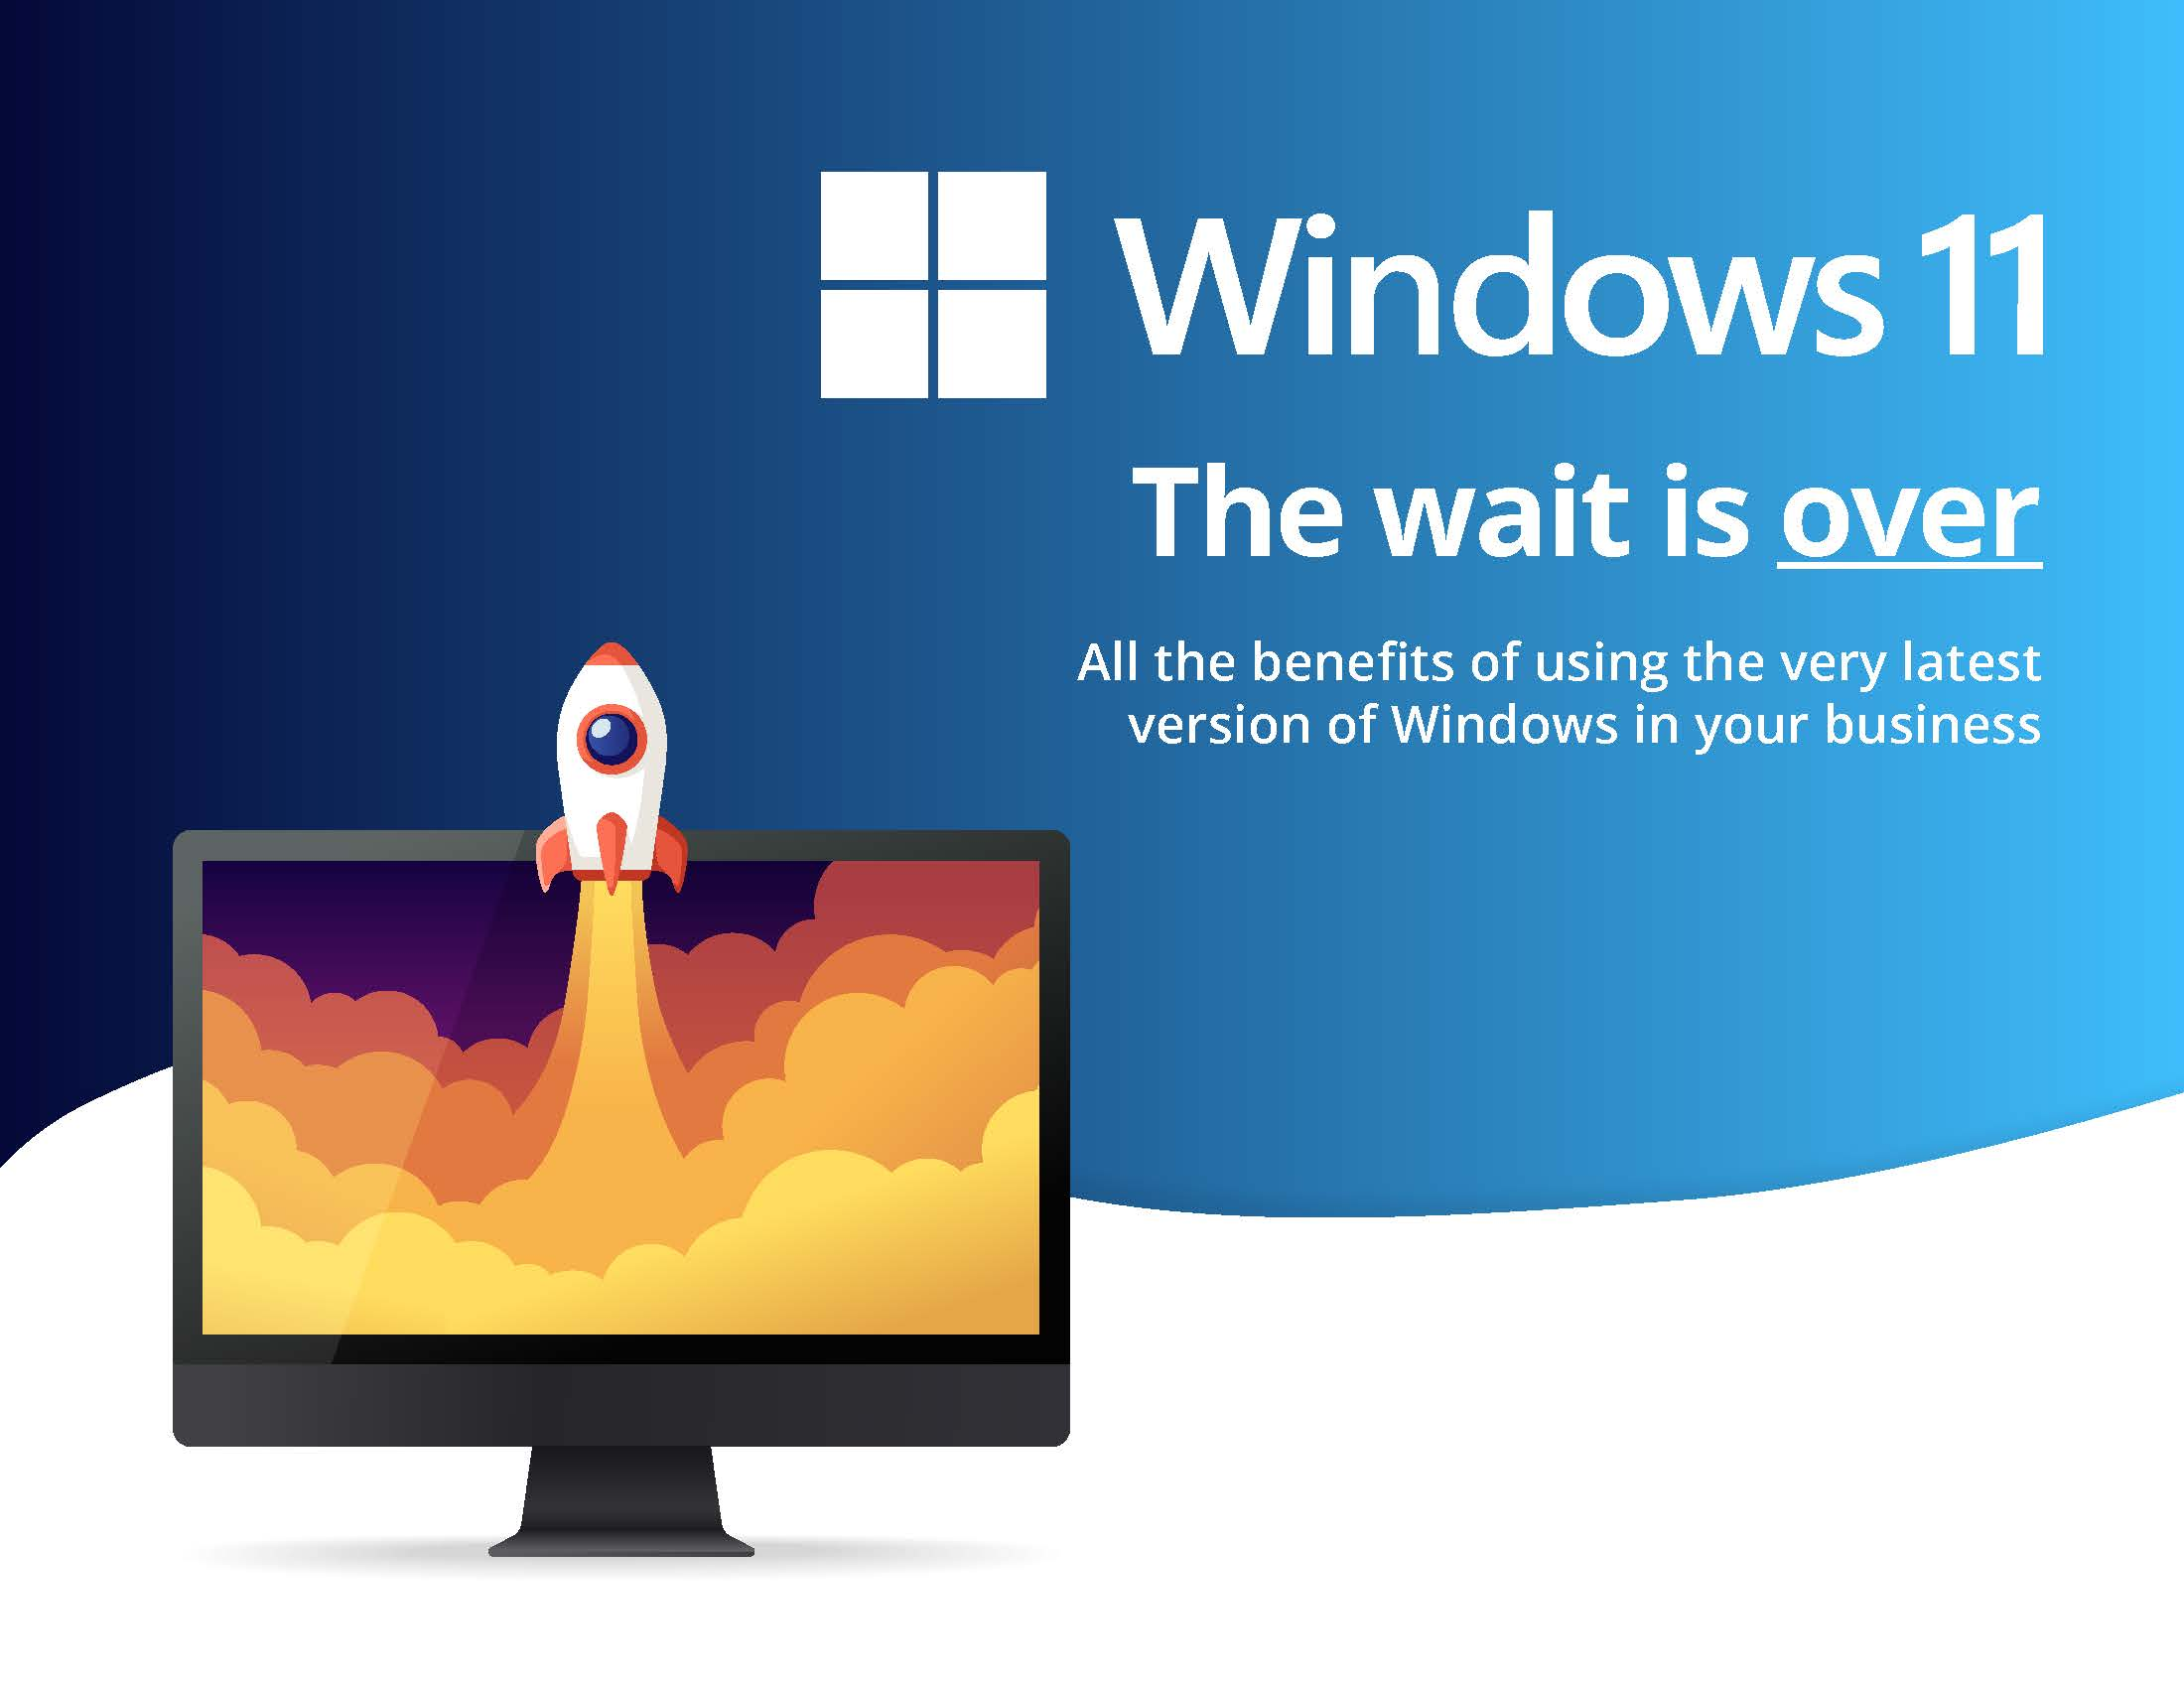 Windows 11: The wait is over